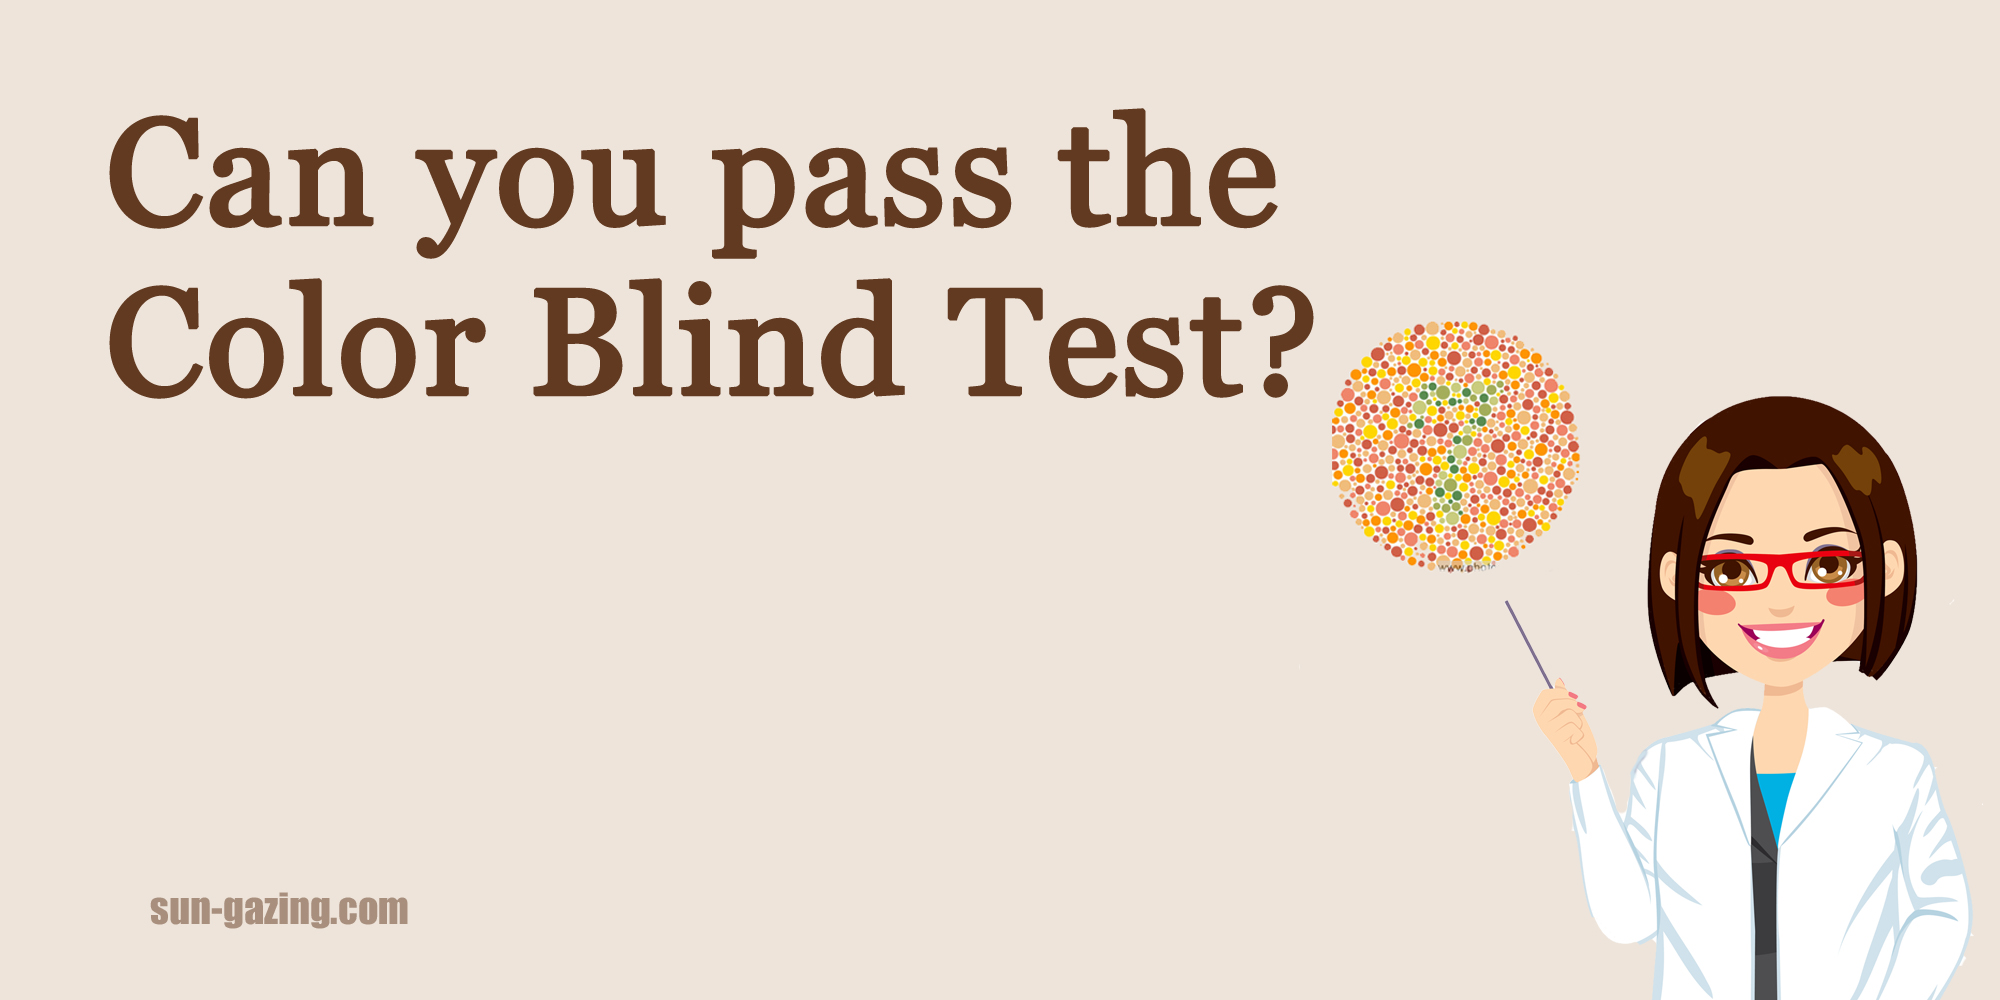 Can you pass the Color Blind Test